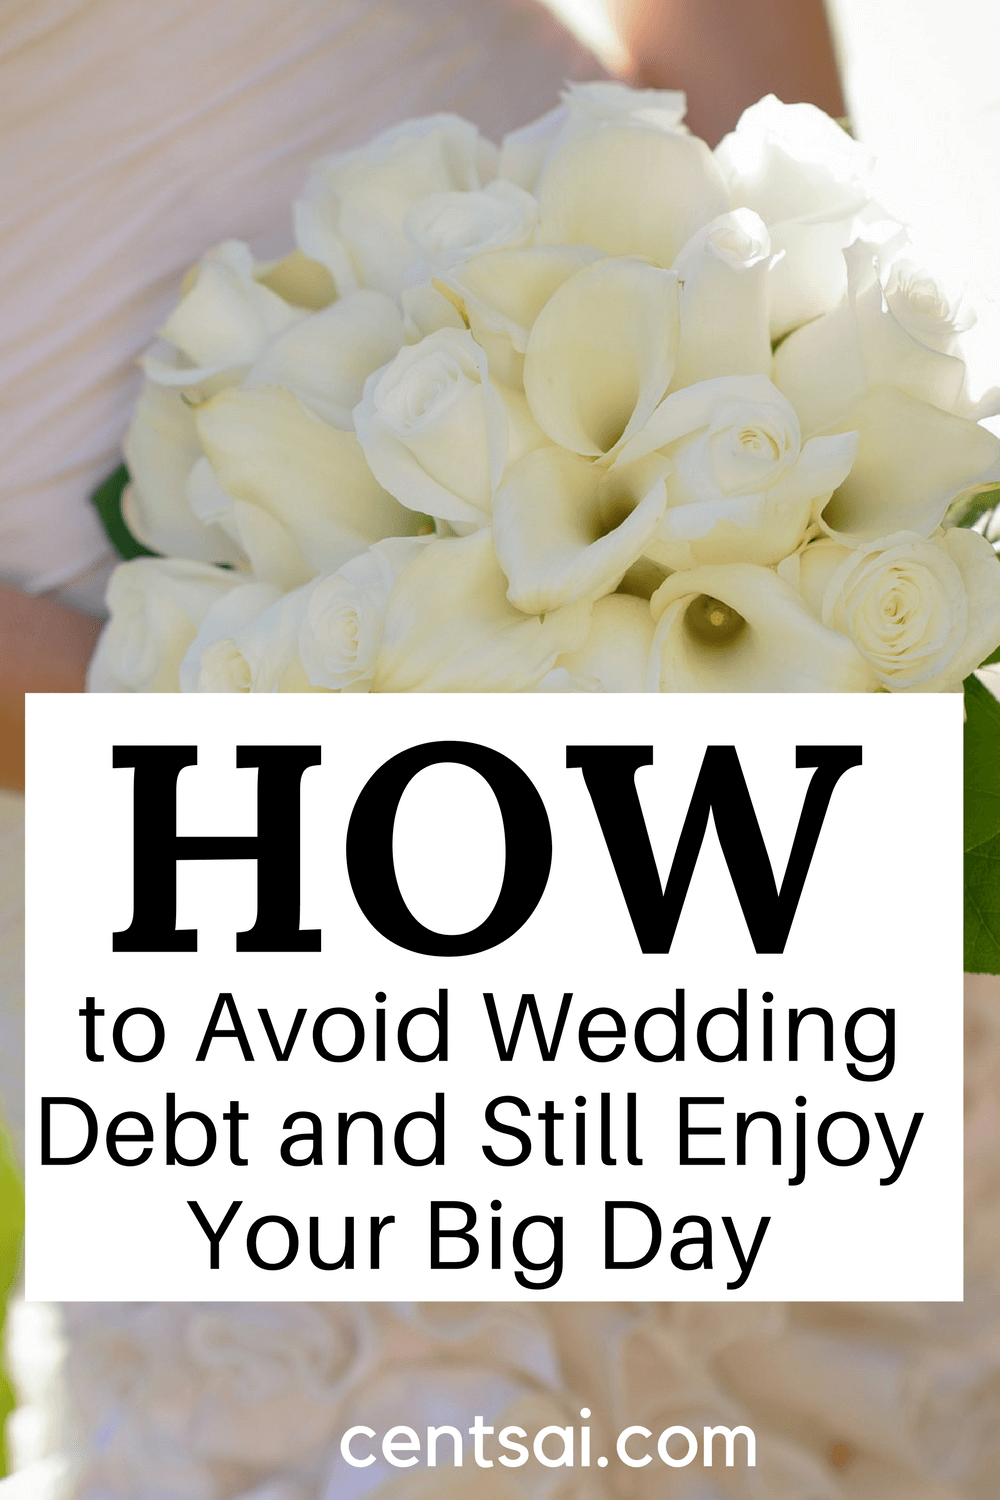 How to Avoid Wedding Debt and Still Enjoy Your Big Day. Weddings can be incredibly expensive for the average couple. Here's how to plan your big day without ending up in wedding debt.